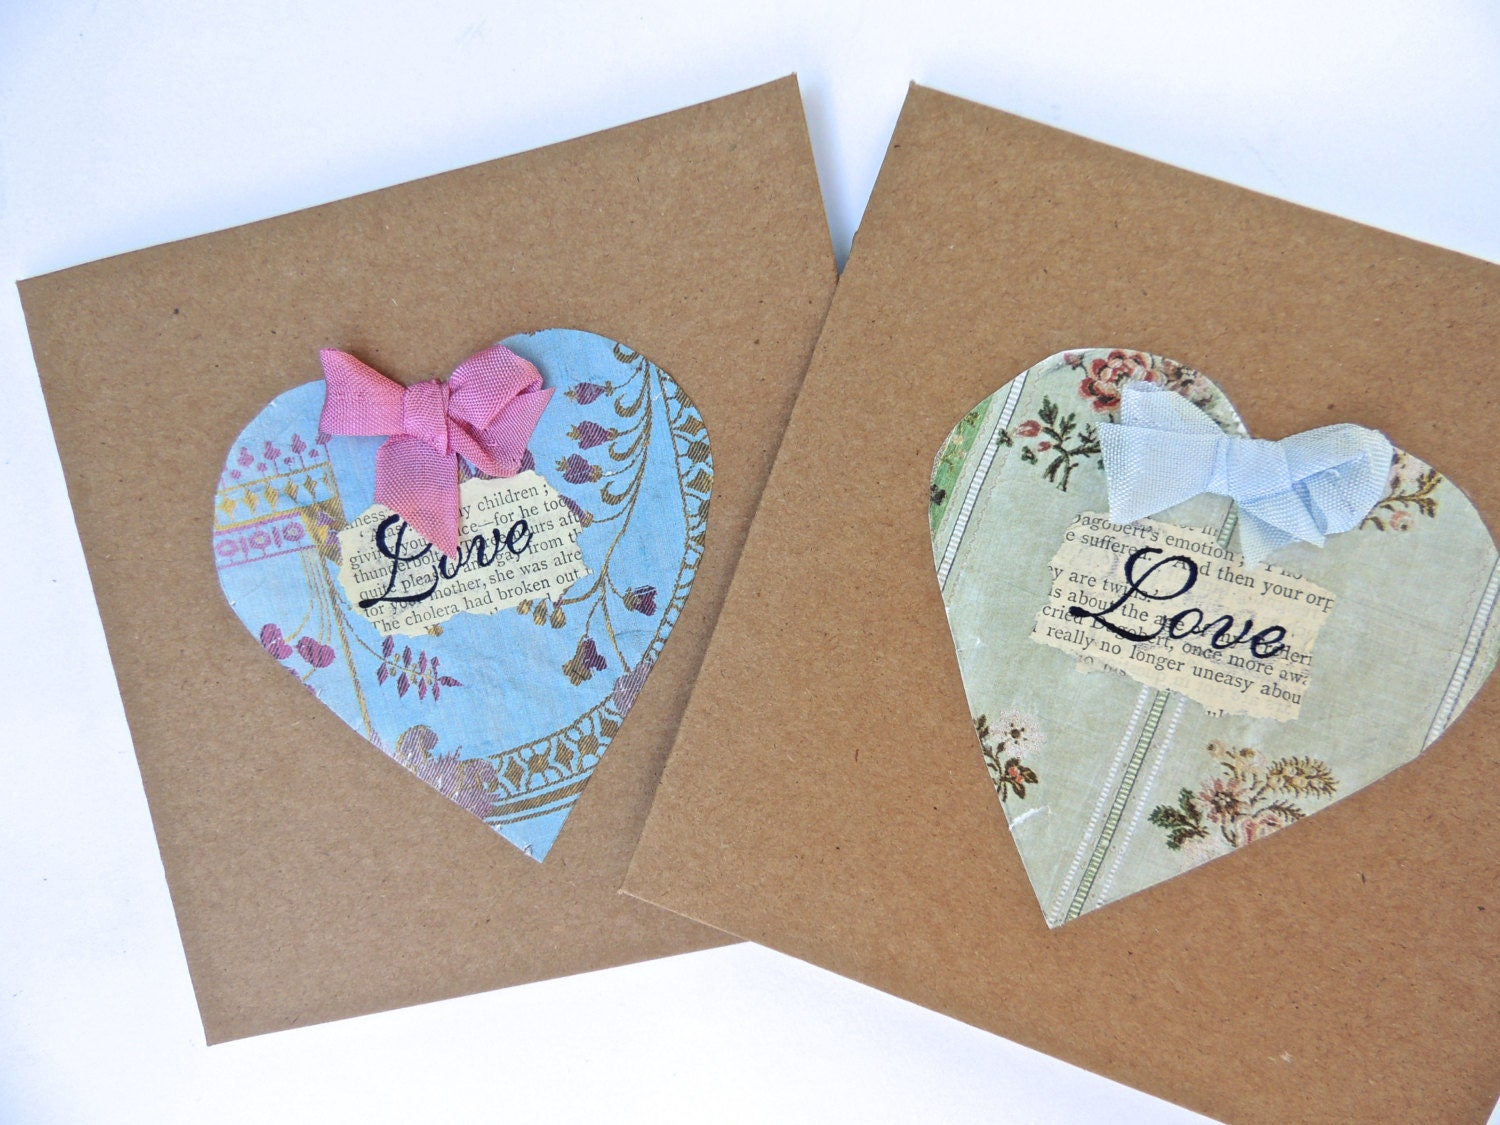 Wedding cards engagement cards heart cards handmade cards wedding cards engagement cards heart cards handmade cards vintagestyle cards shabbychic kristyandbryce Choice Image